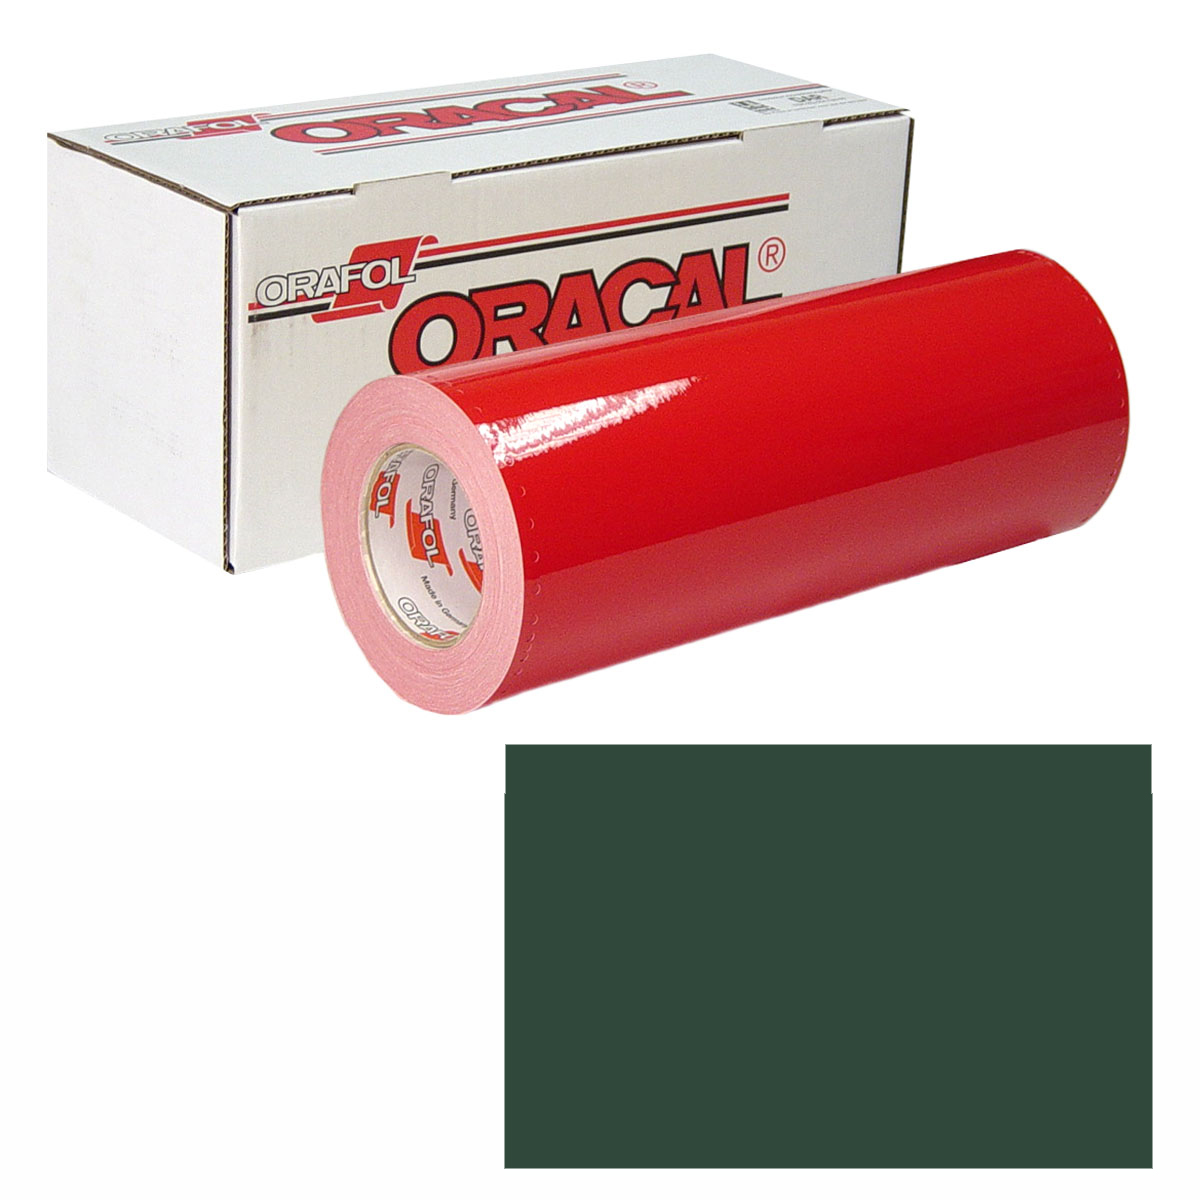 ORACAL 951M Unp 48In X 10Yd 677 Fir Green